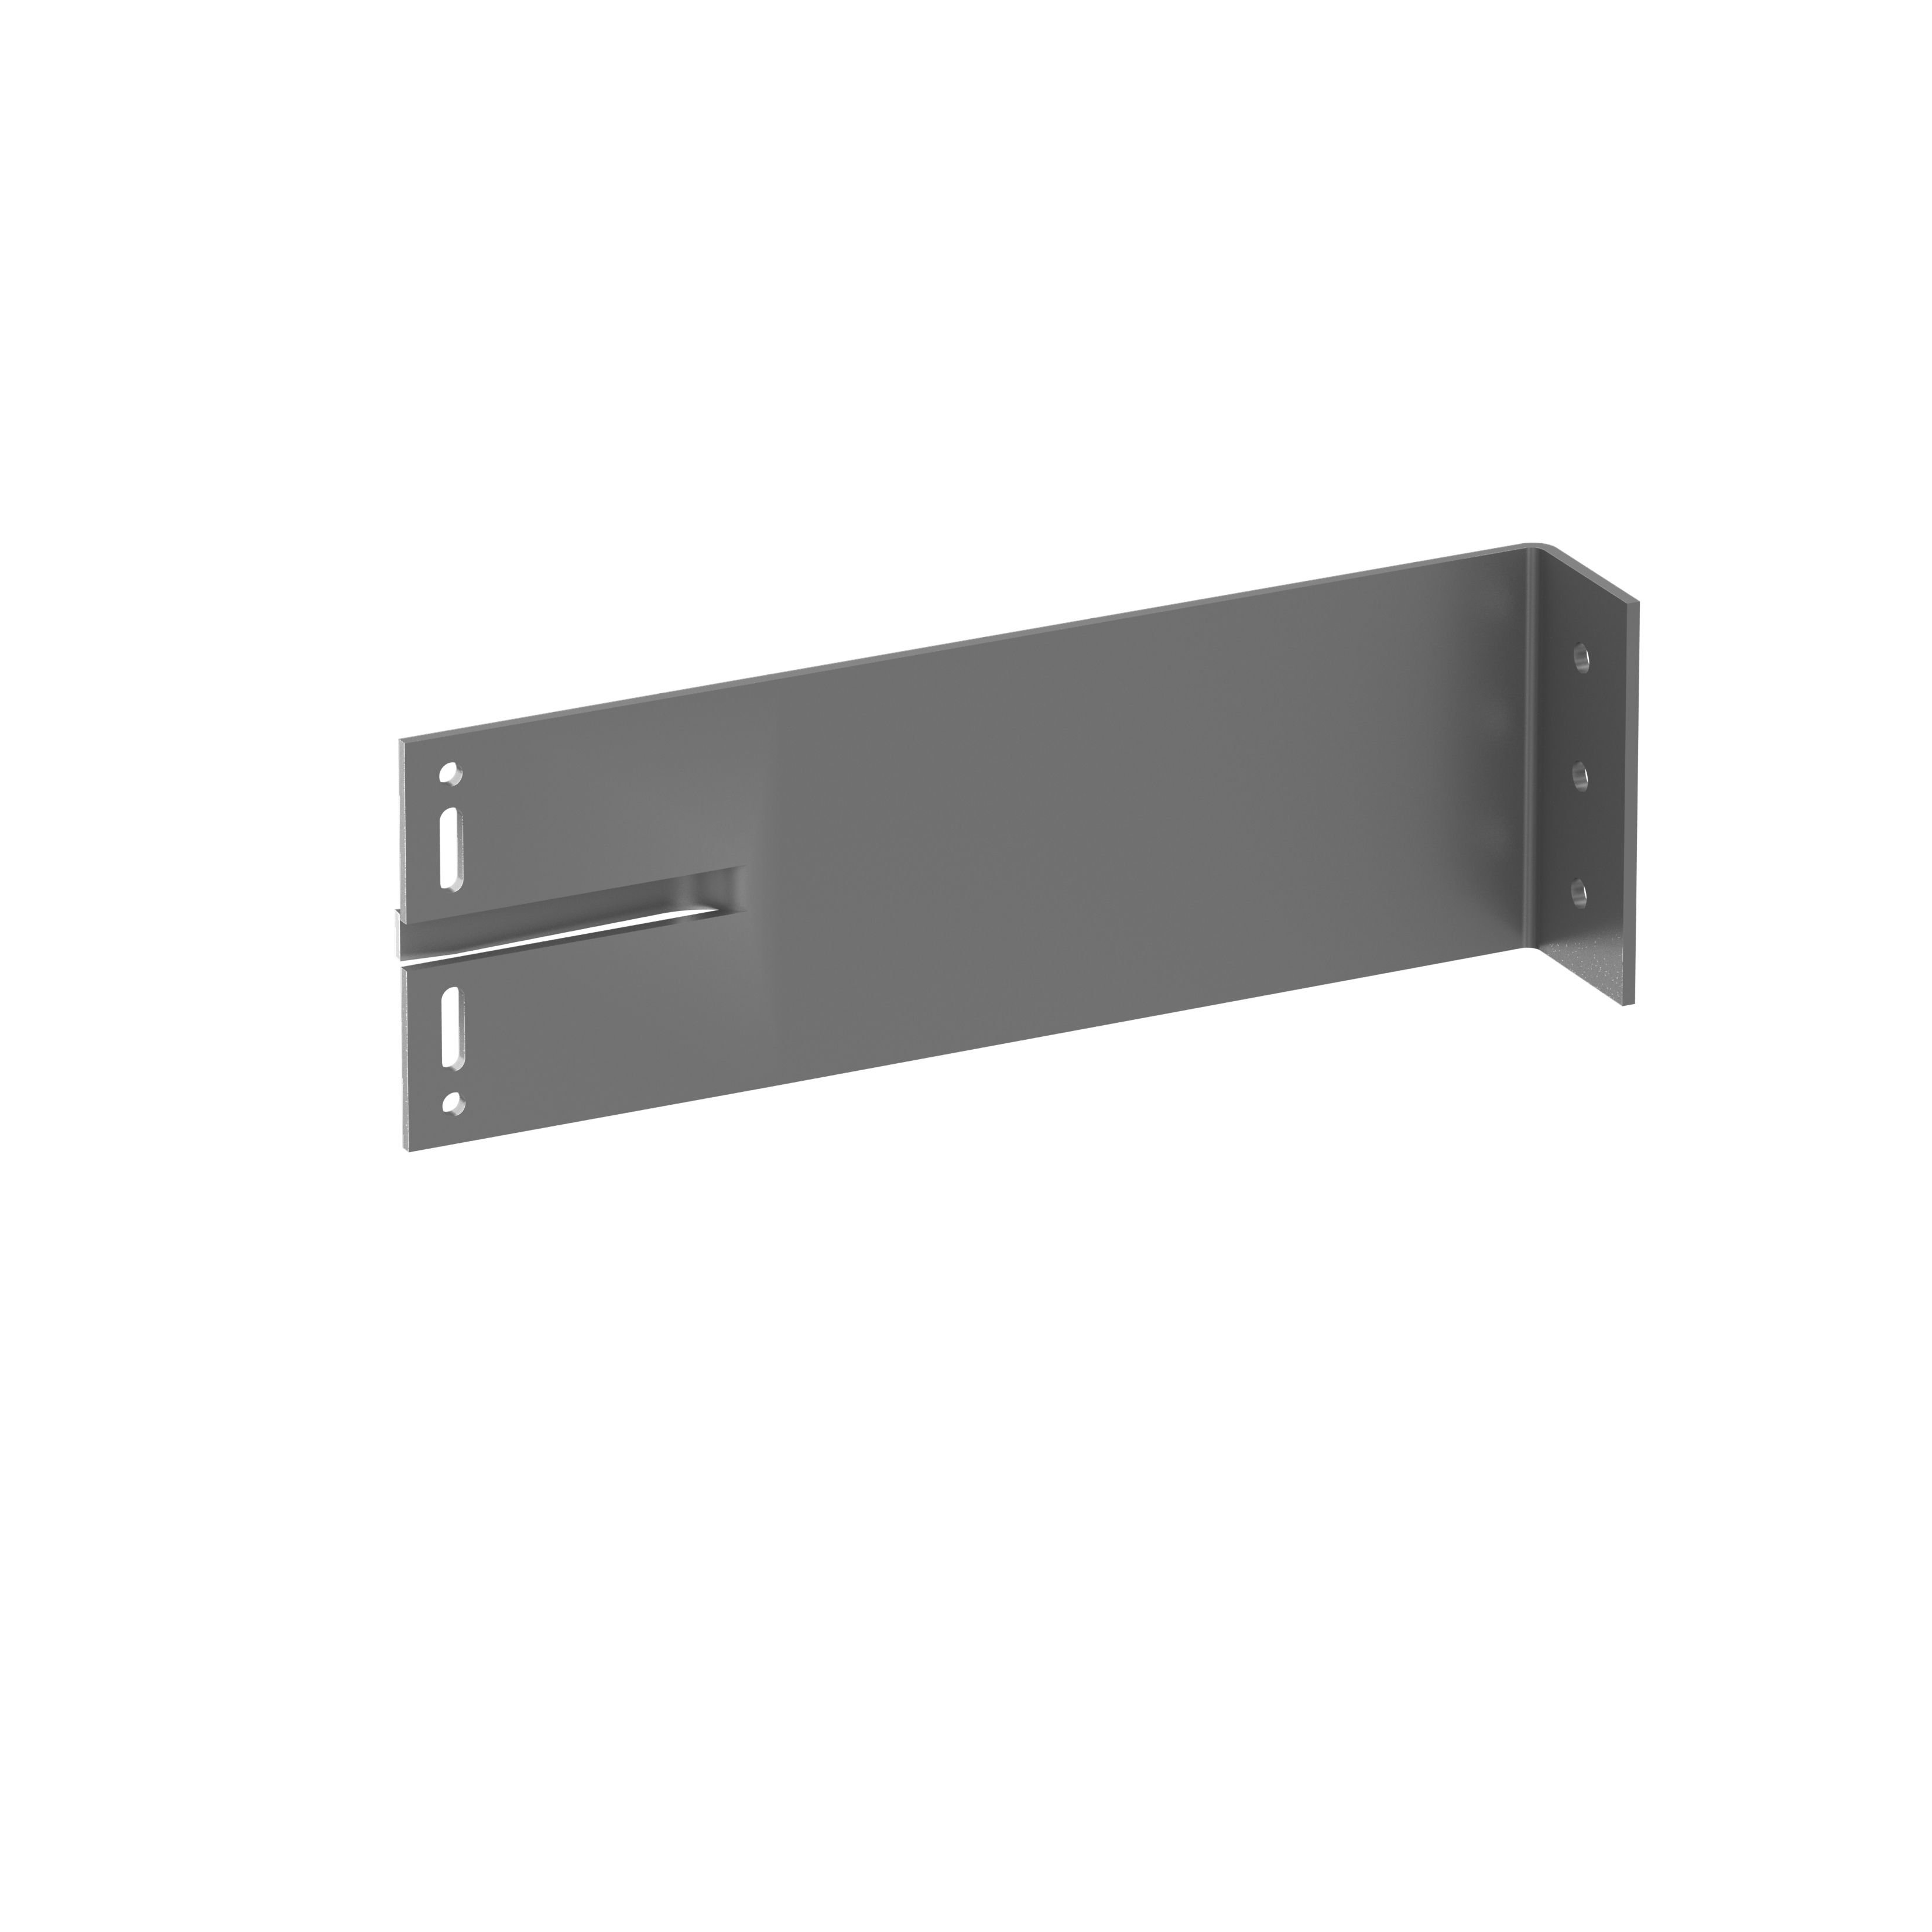 ECO Cladding' Stainless Steel Sigma Wall Bracket